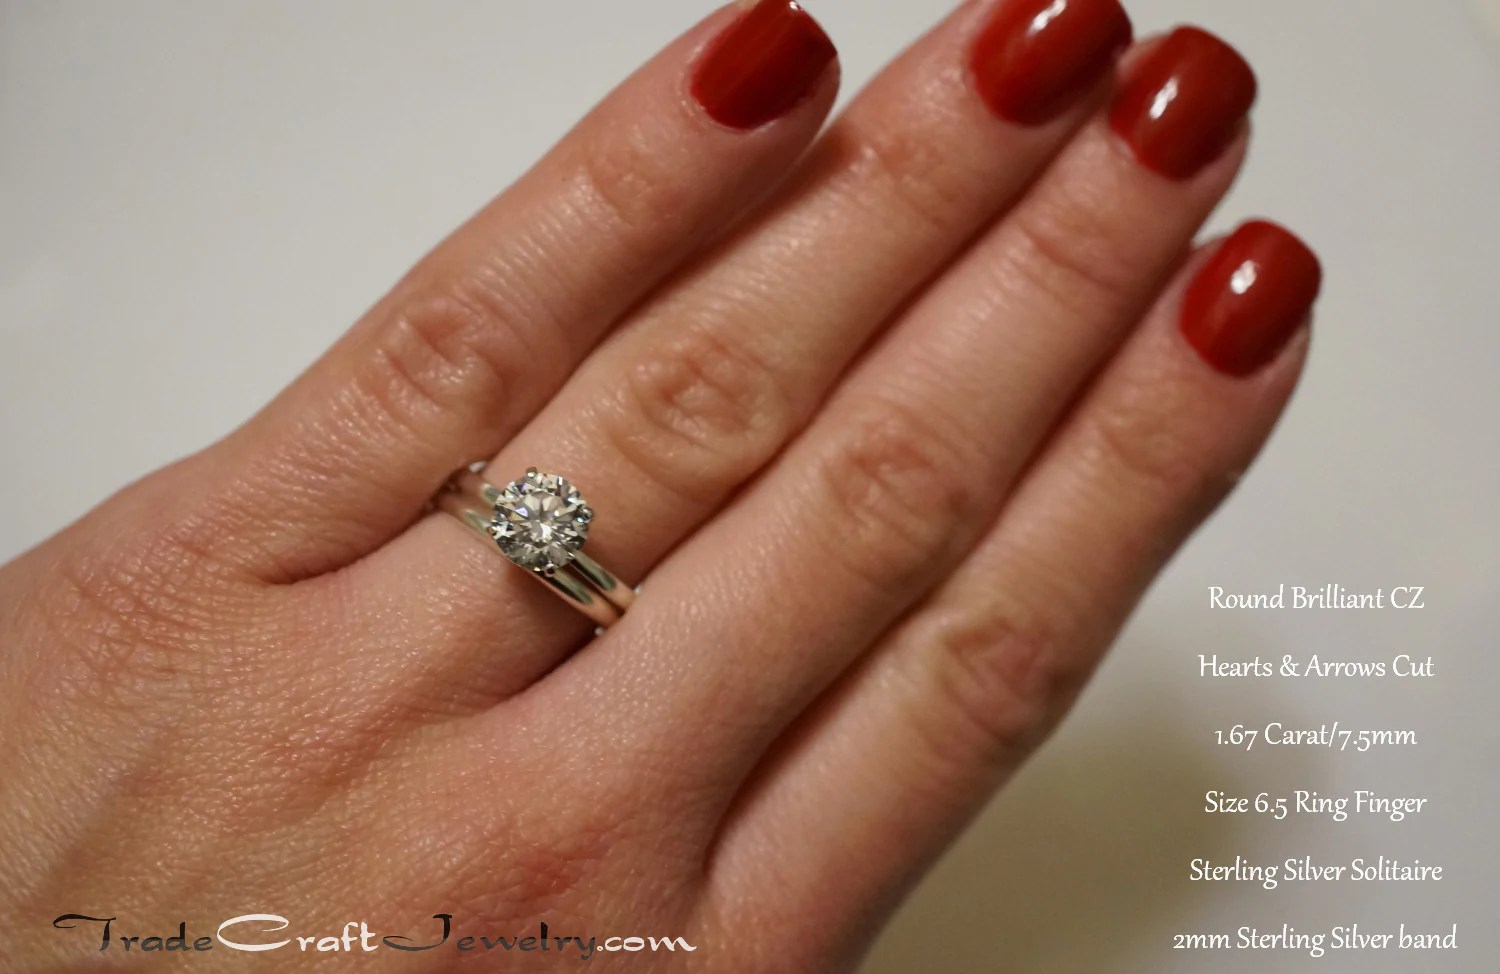 This picture shows mm round brilliant ct mm cushion ct ct ct us dime size ring finger also stone comparisons with hand shots  tradecraft jewelry rh shopadecraftjewelry